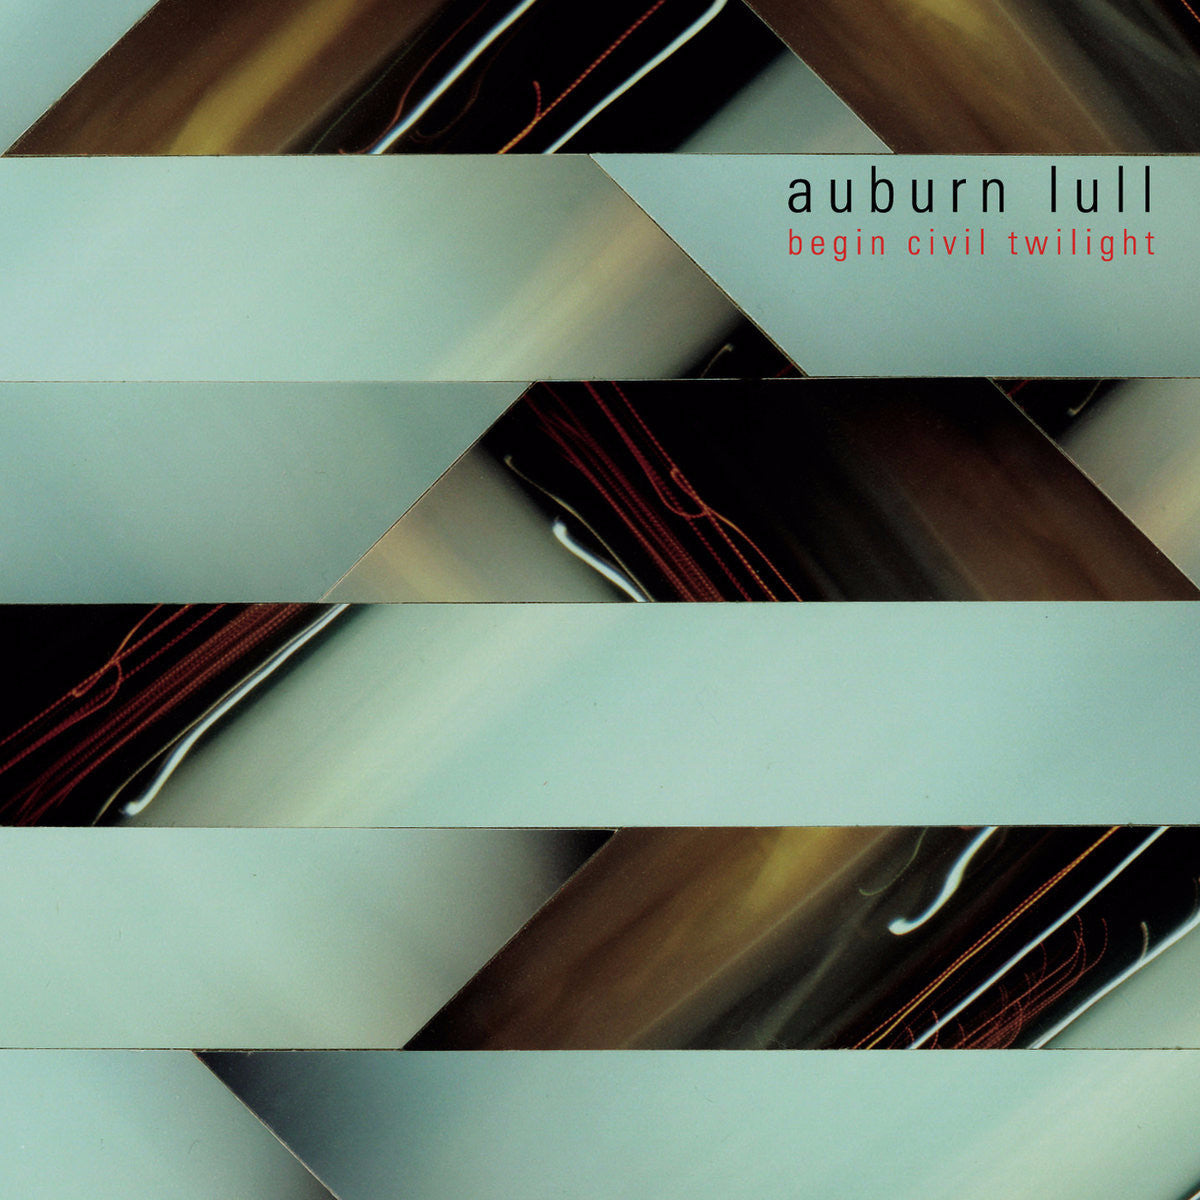 Auburn Lull - Begin Civil Twilight